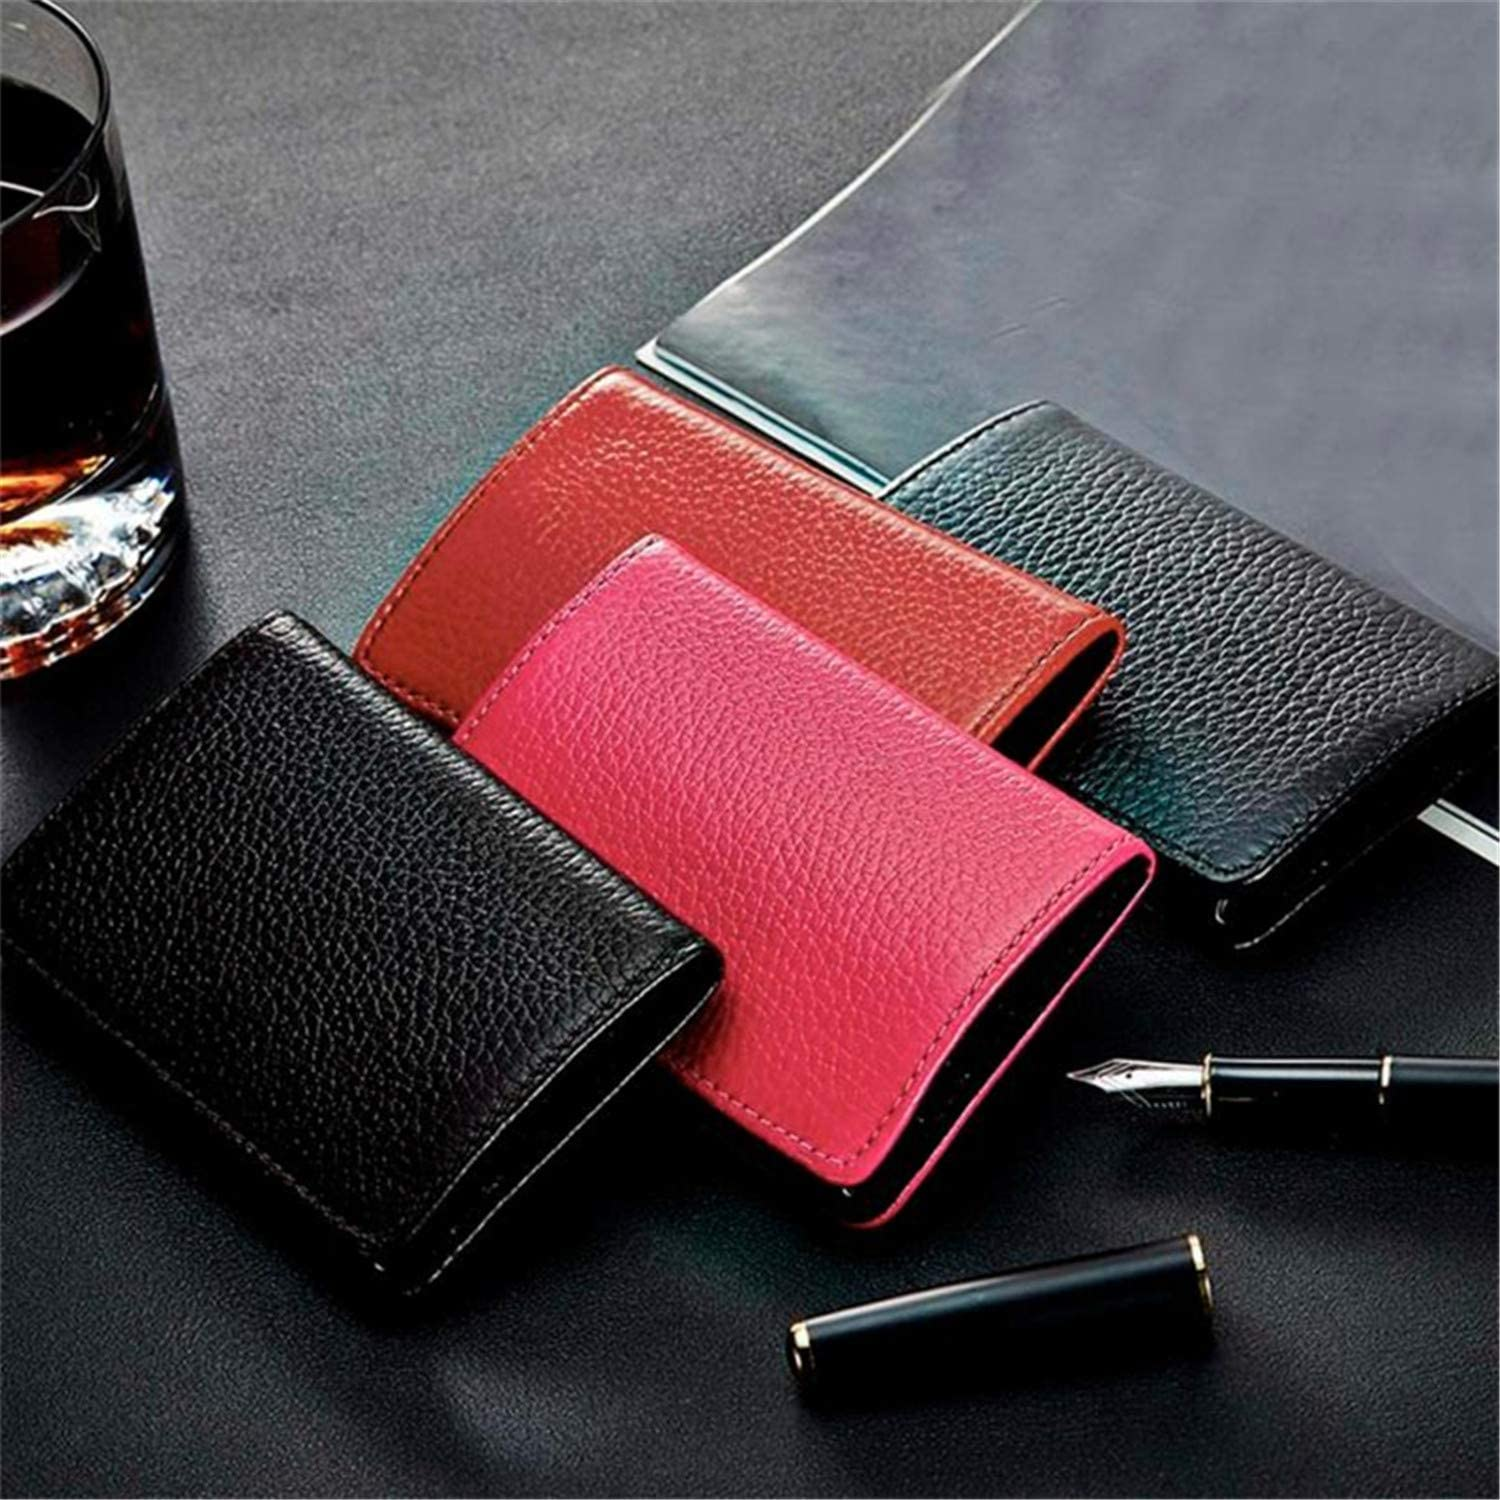 Clearance Women Men Credit Card Package Card Holder Business Card Case O0517#30